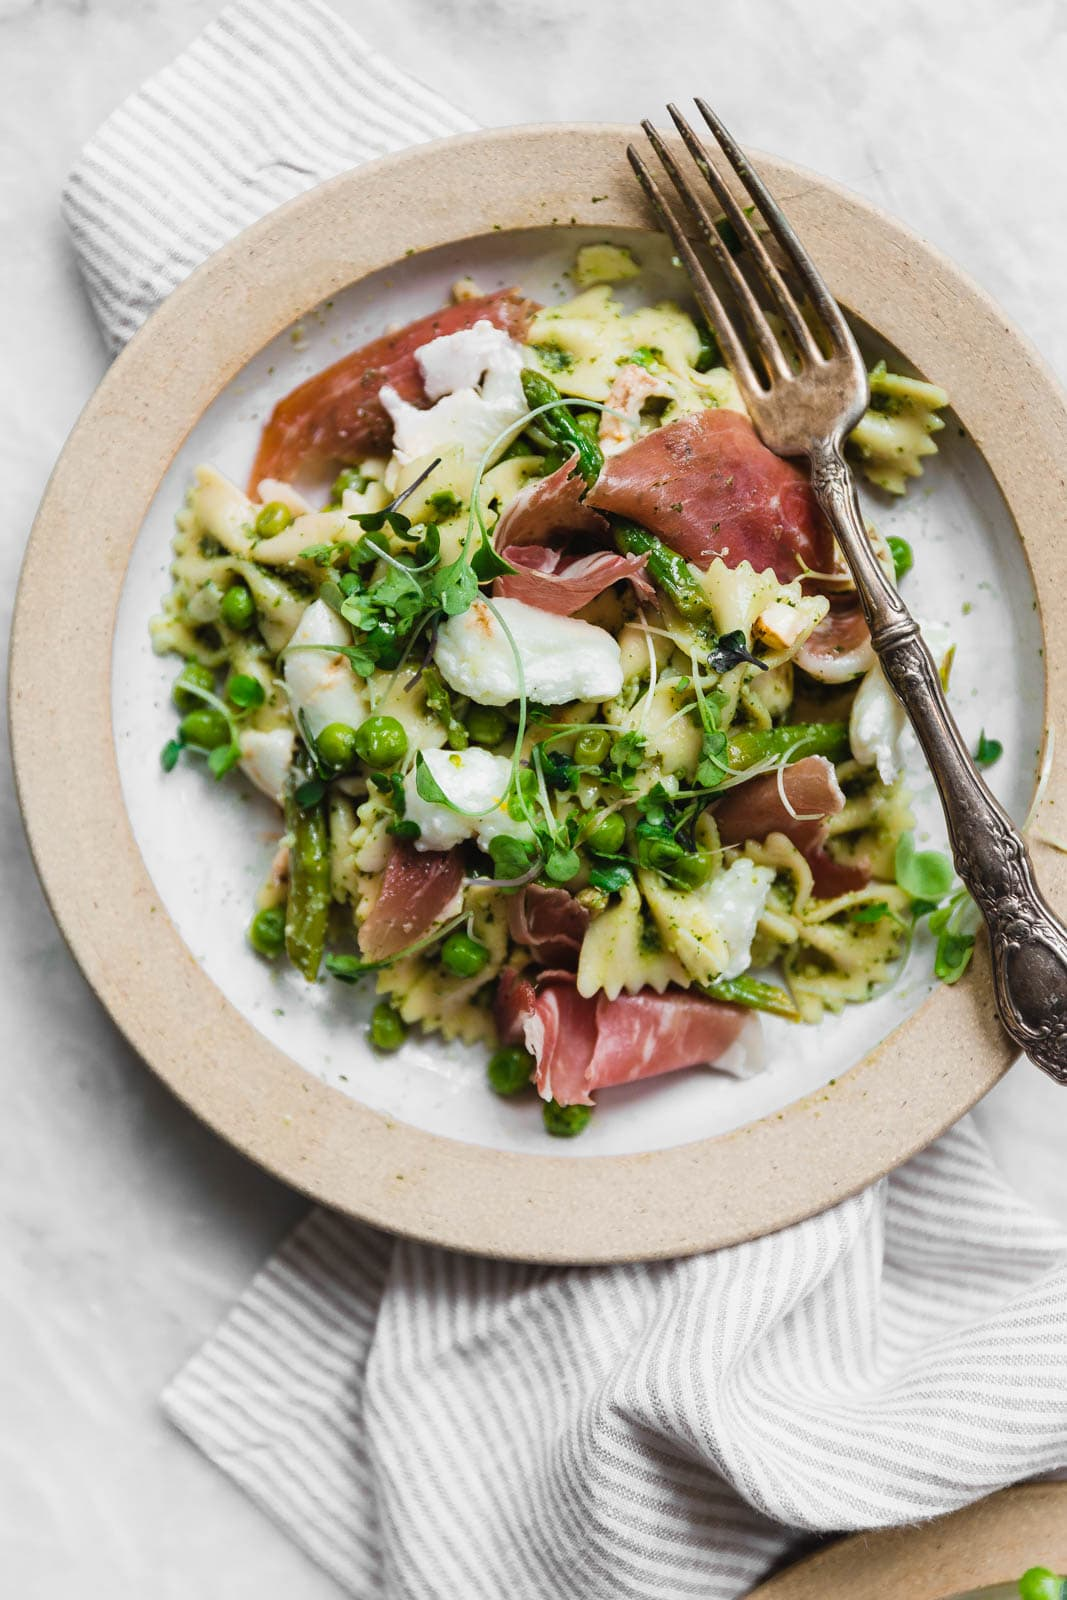 A sensational pasta salad with homemade pesto, prosciutto, peas, asparagus, and burrata.